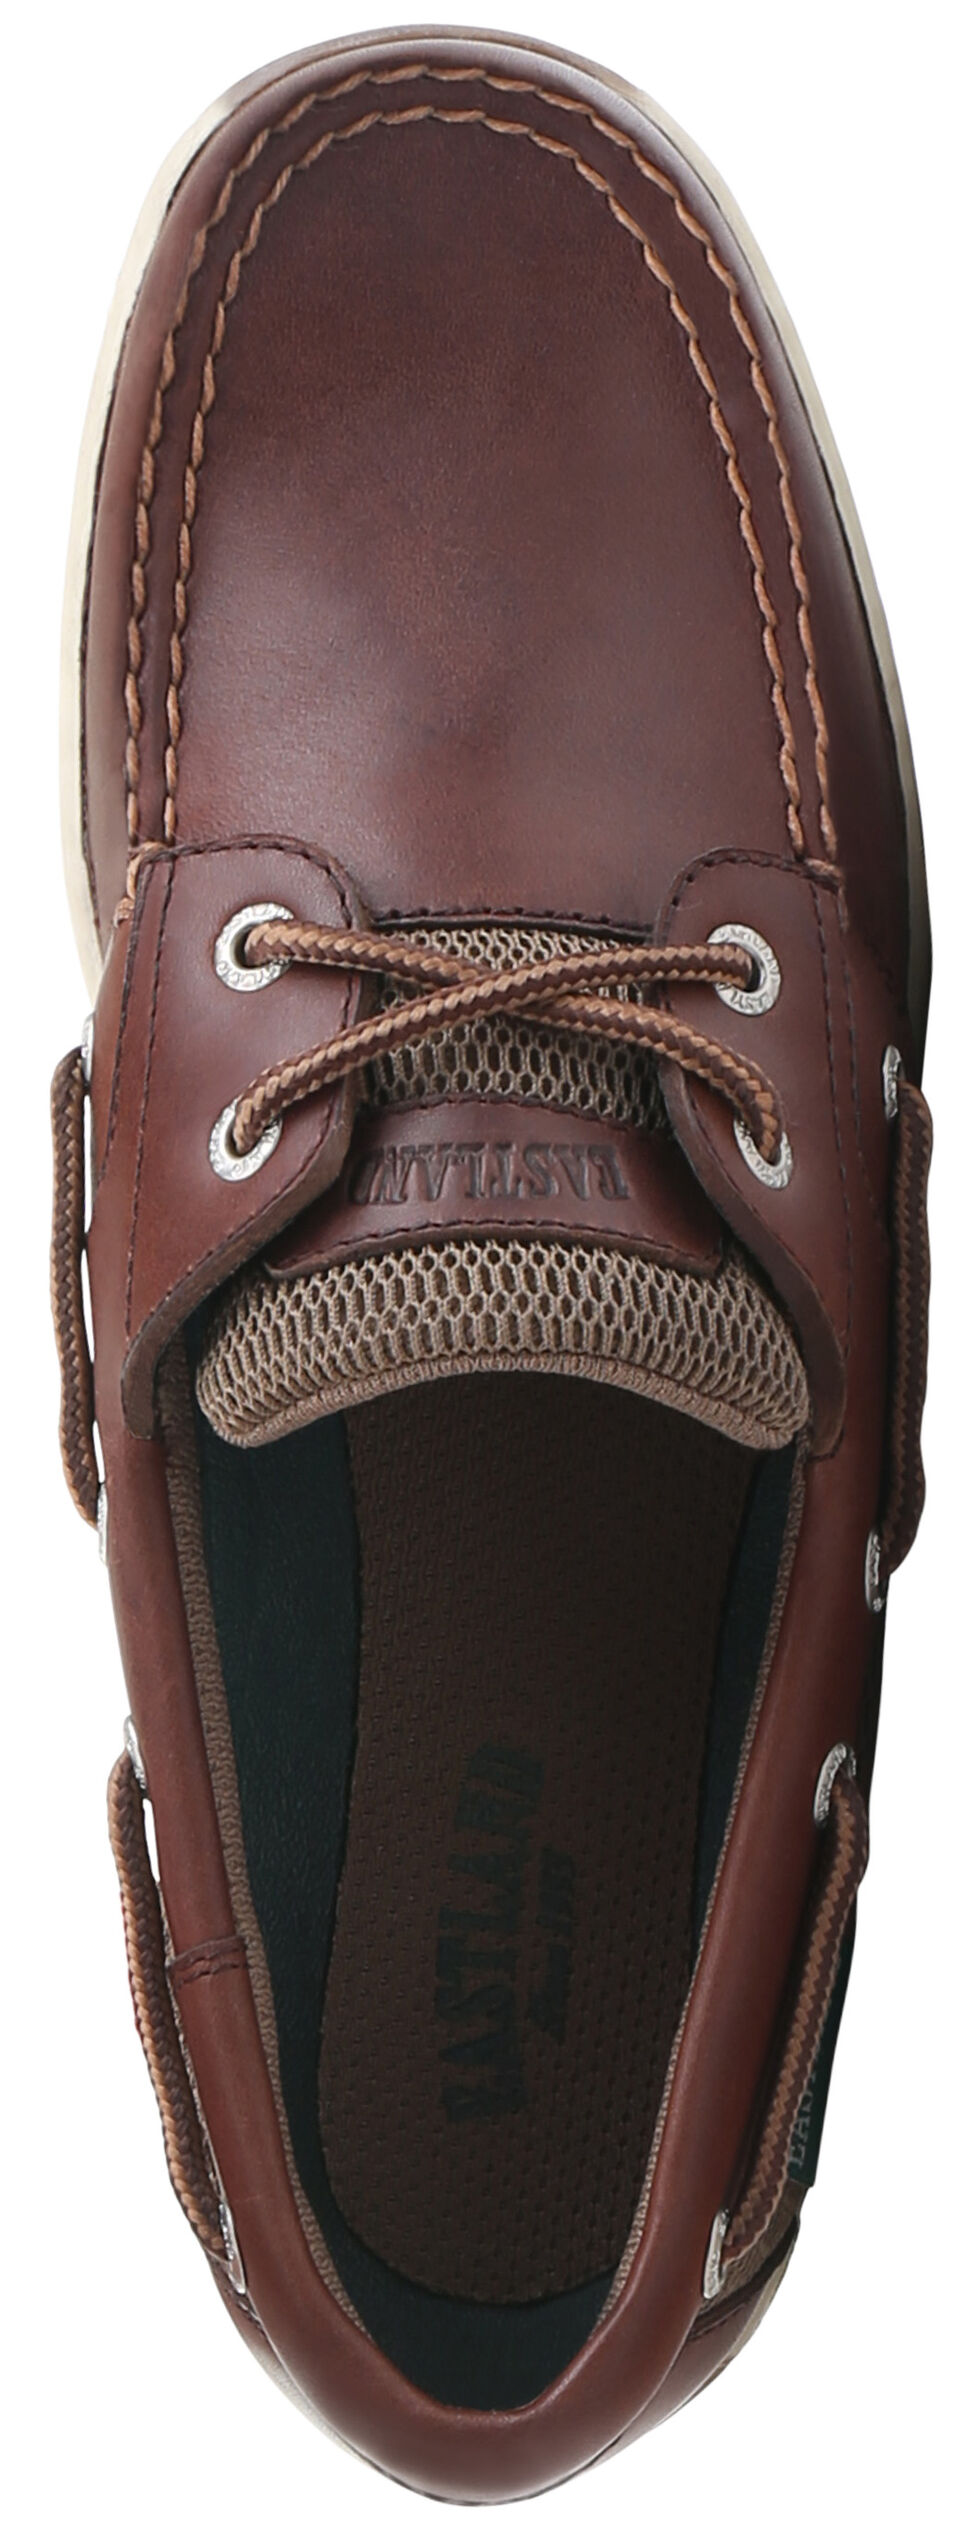 Eastland Women's Chestnut Brown Solstice Boat Shoe Oxfords  , Brown, hi-res